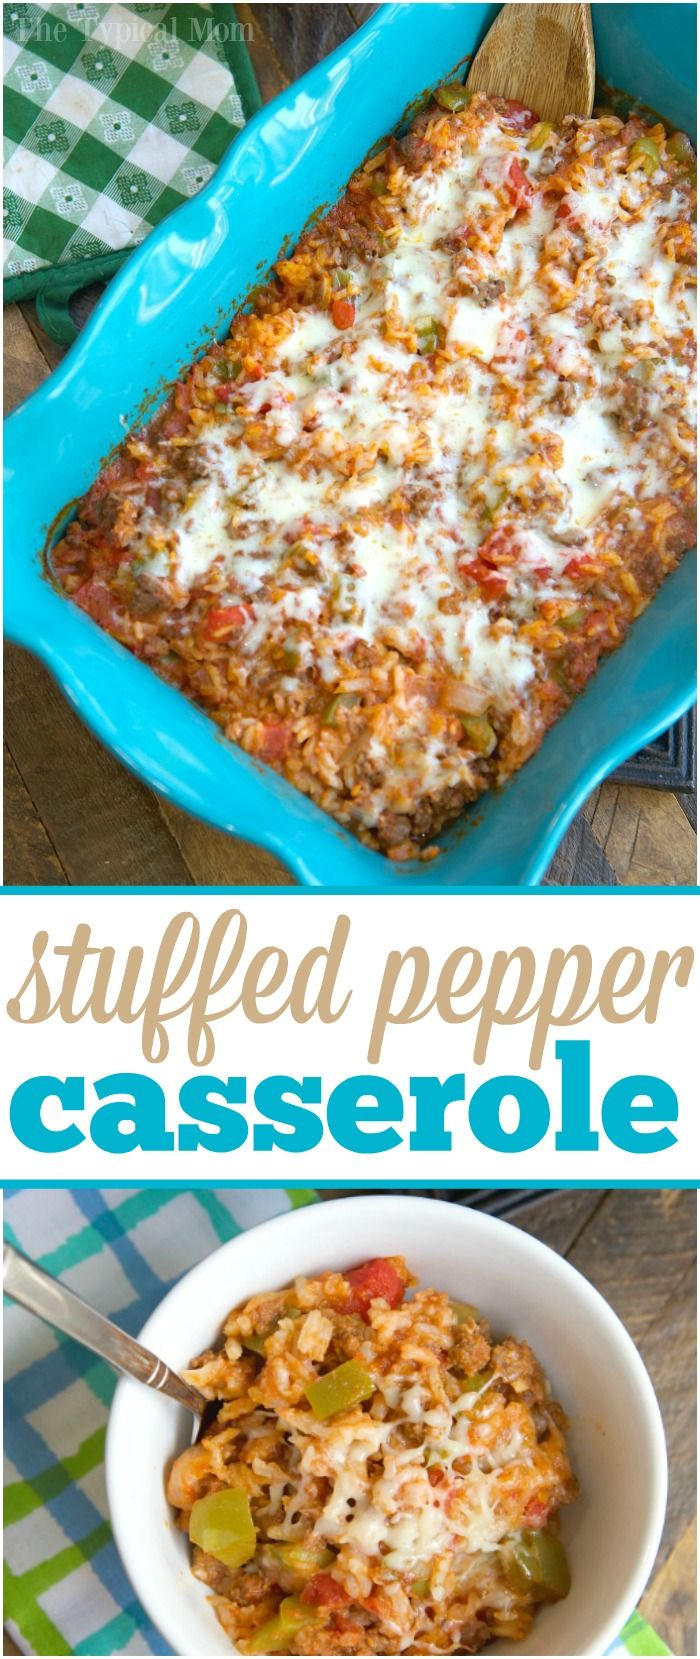 This cheesy stuffed pepper casserole is so good! Like deconstructed stuffed bell peppers it's easy to throw together and even my kids love it! via @thetypicalmom